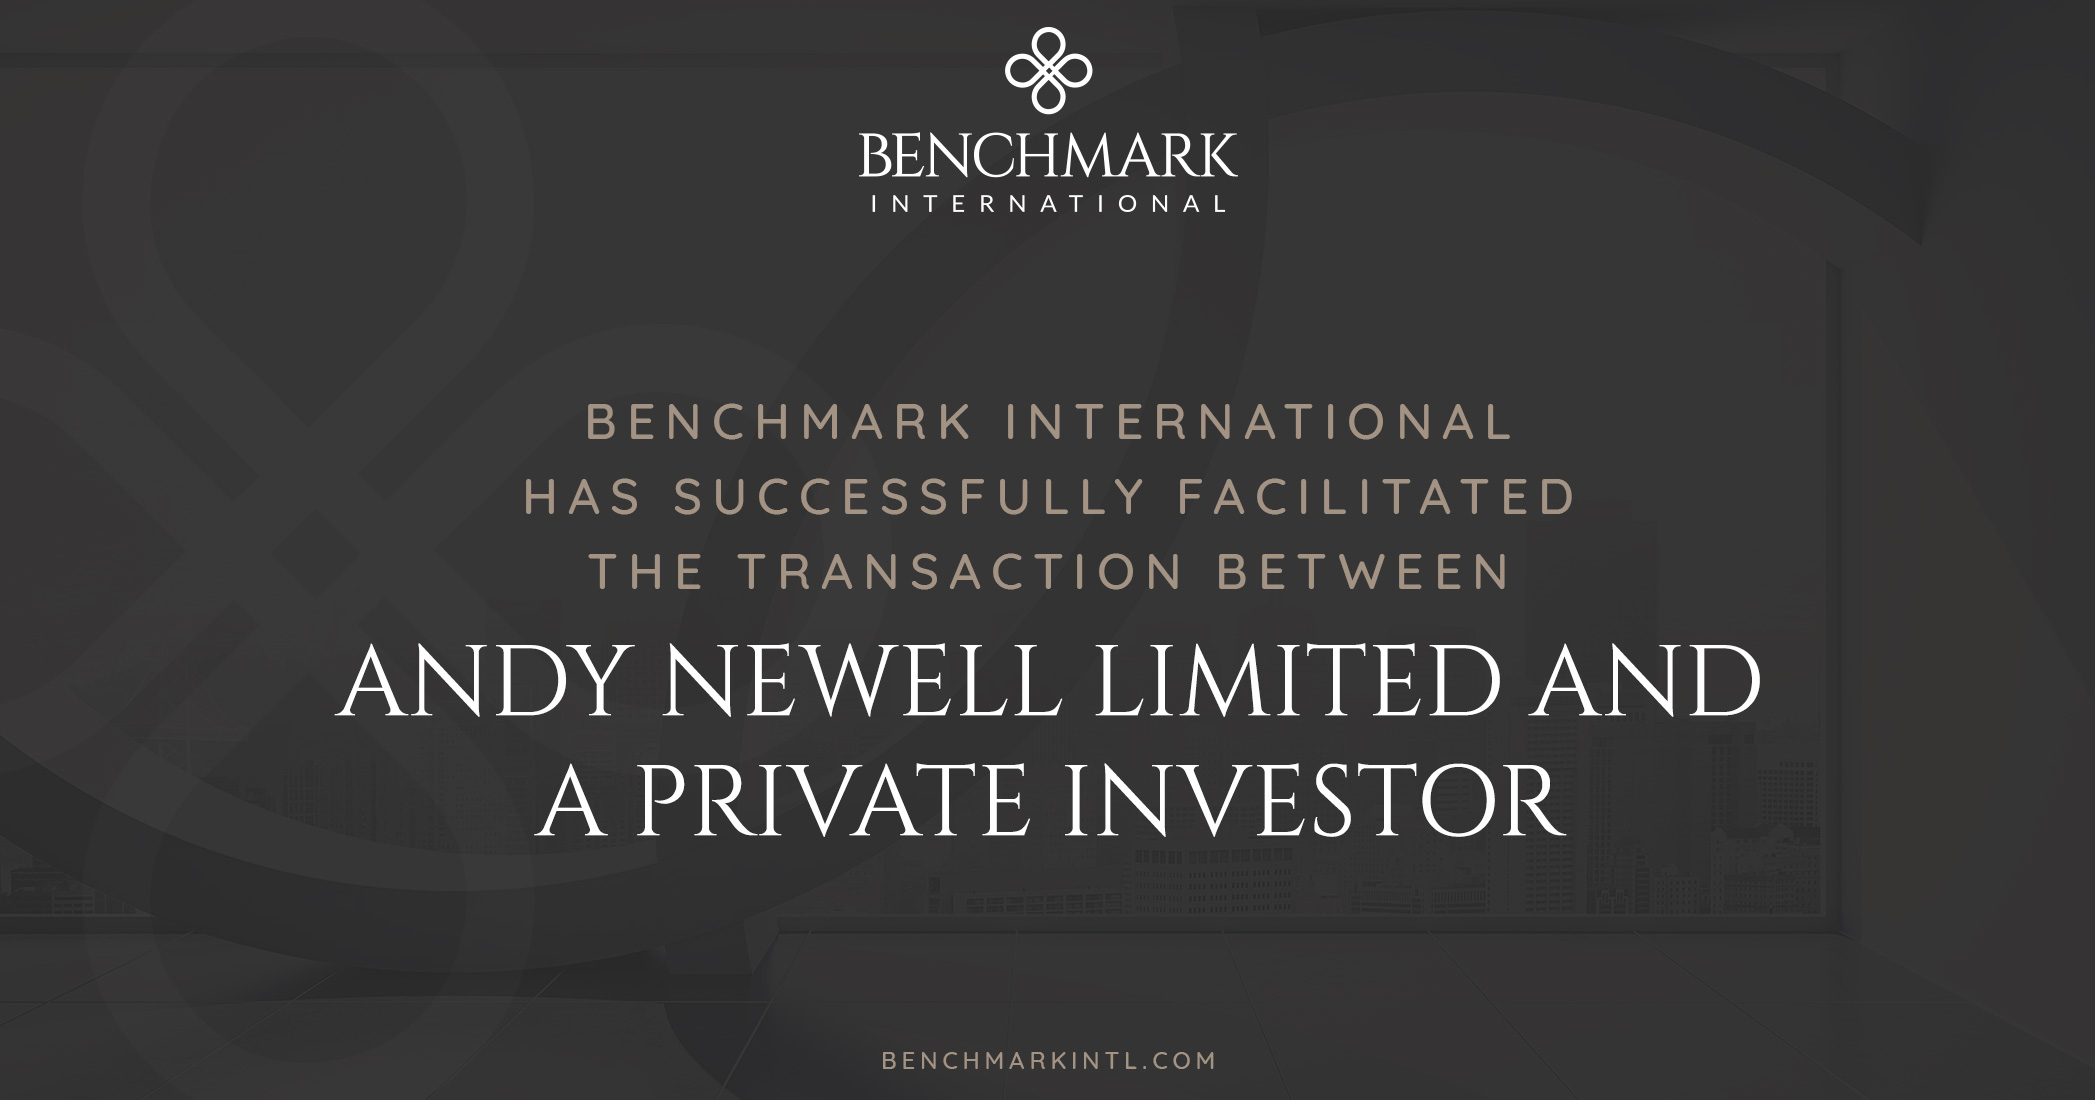 Benchmark International Successfully Facilitated the Transaction Between Andy Newell Limited and a Private Investor